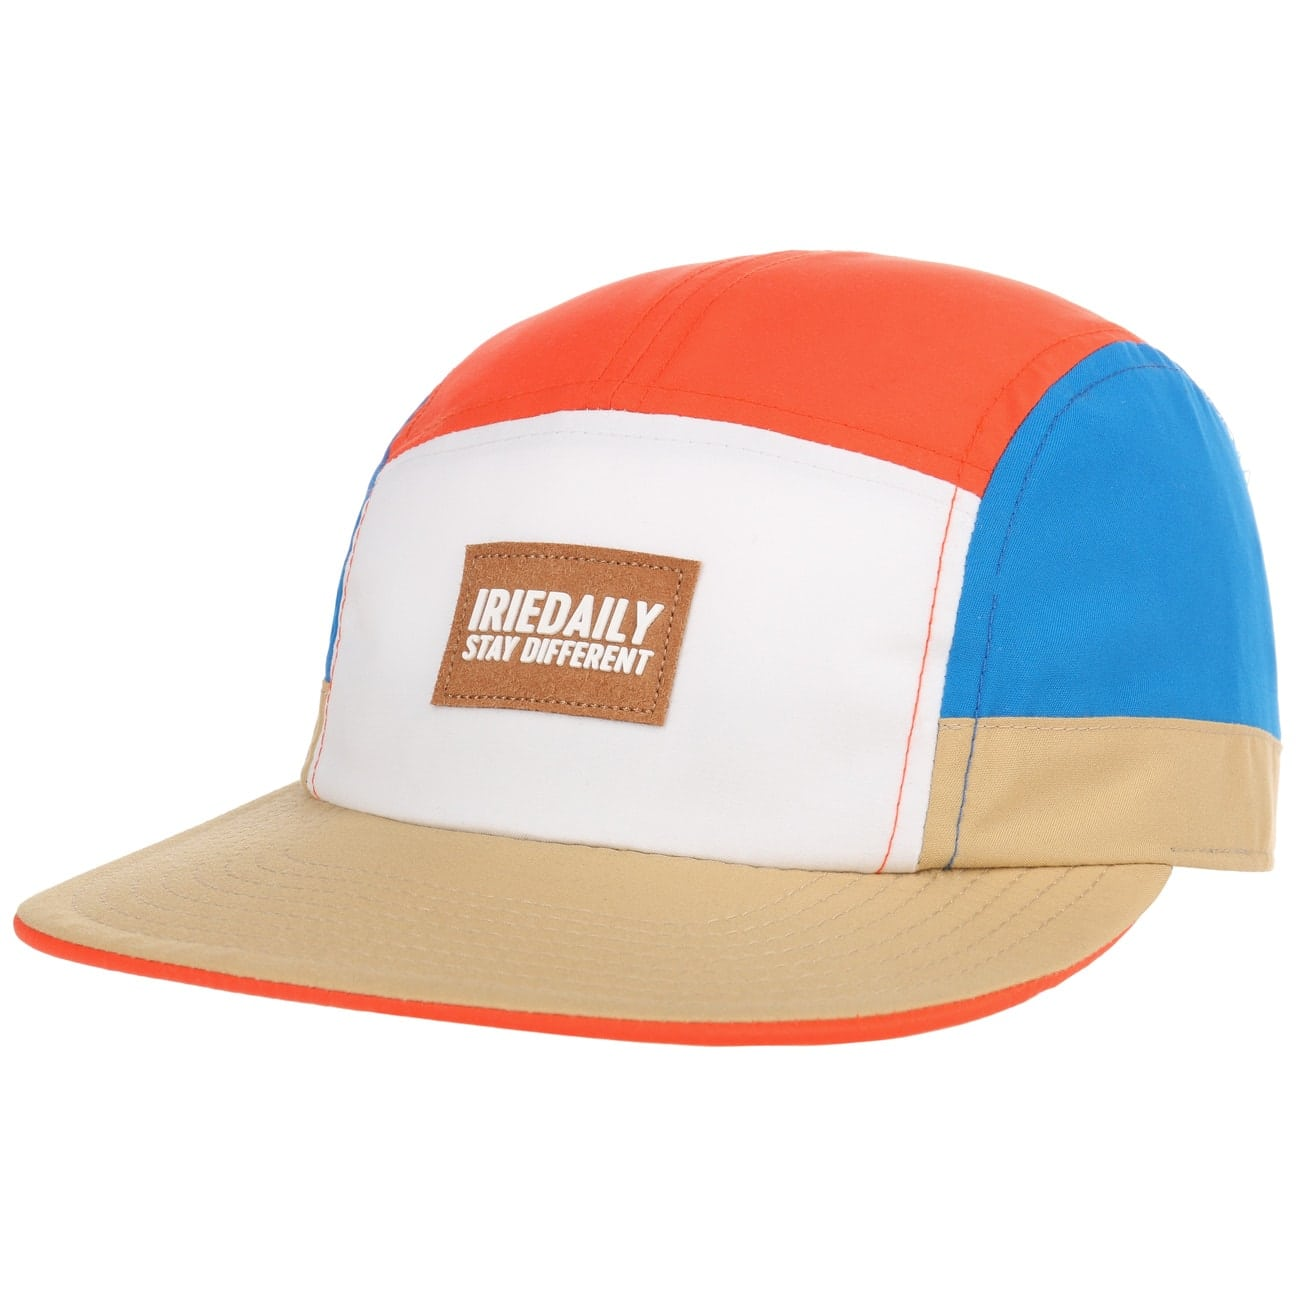 Casquette Stay Different Camper by iriedaily  casquette visière plate